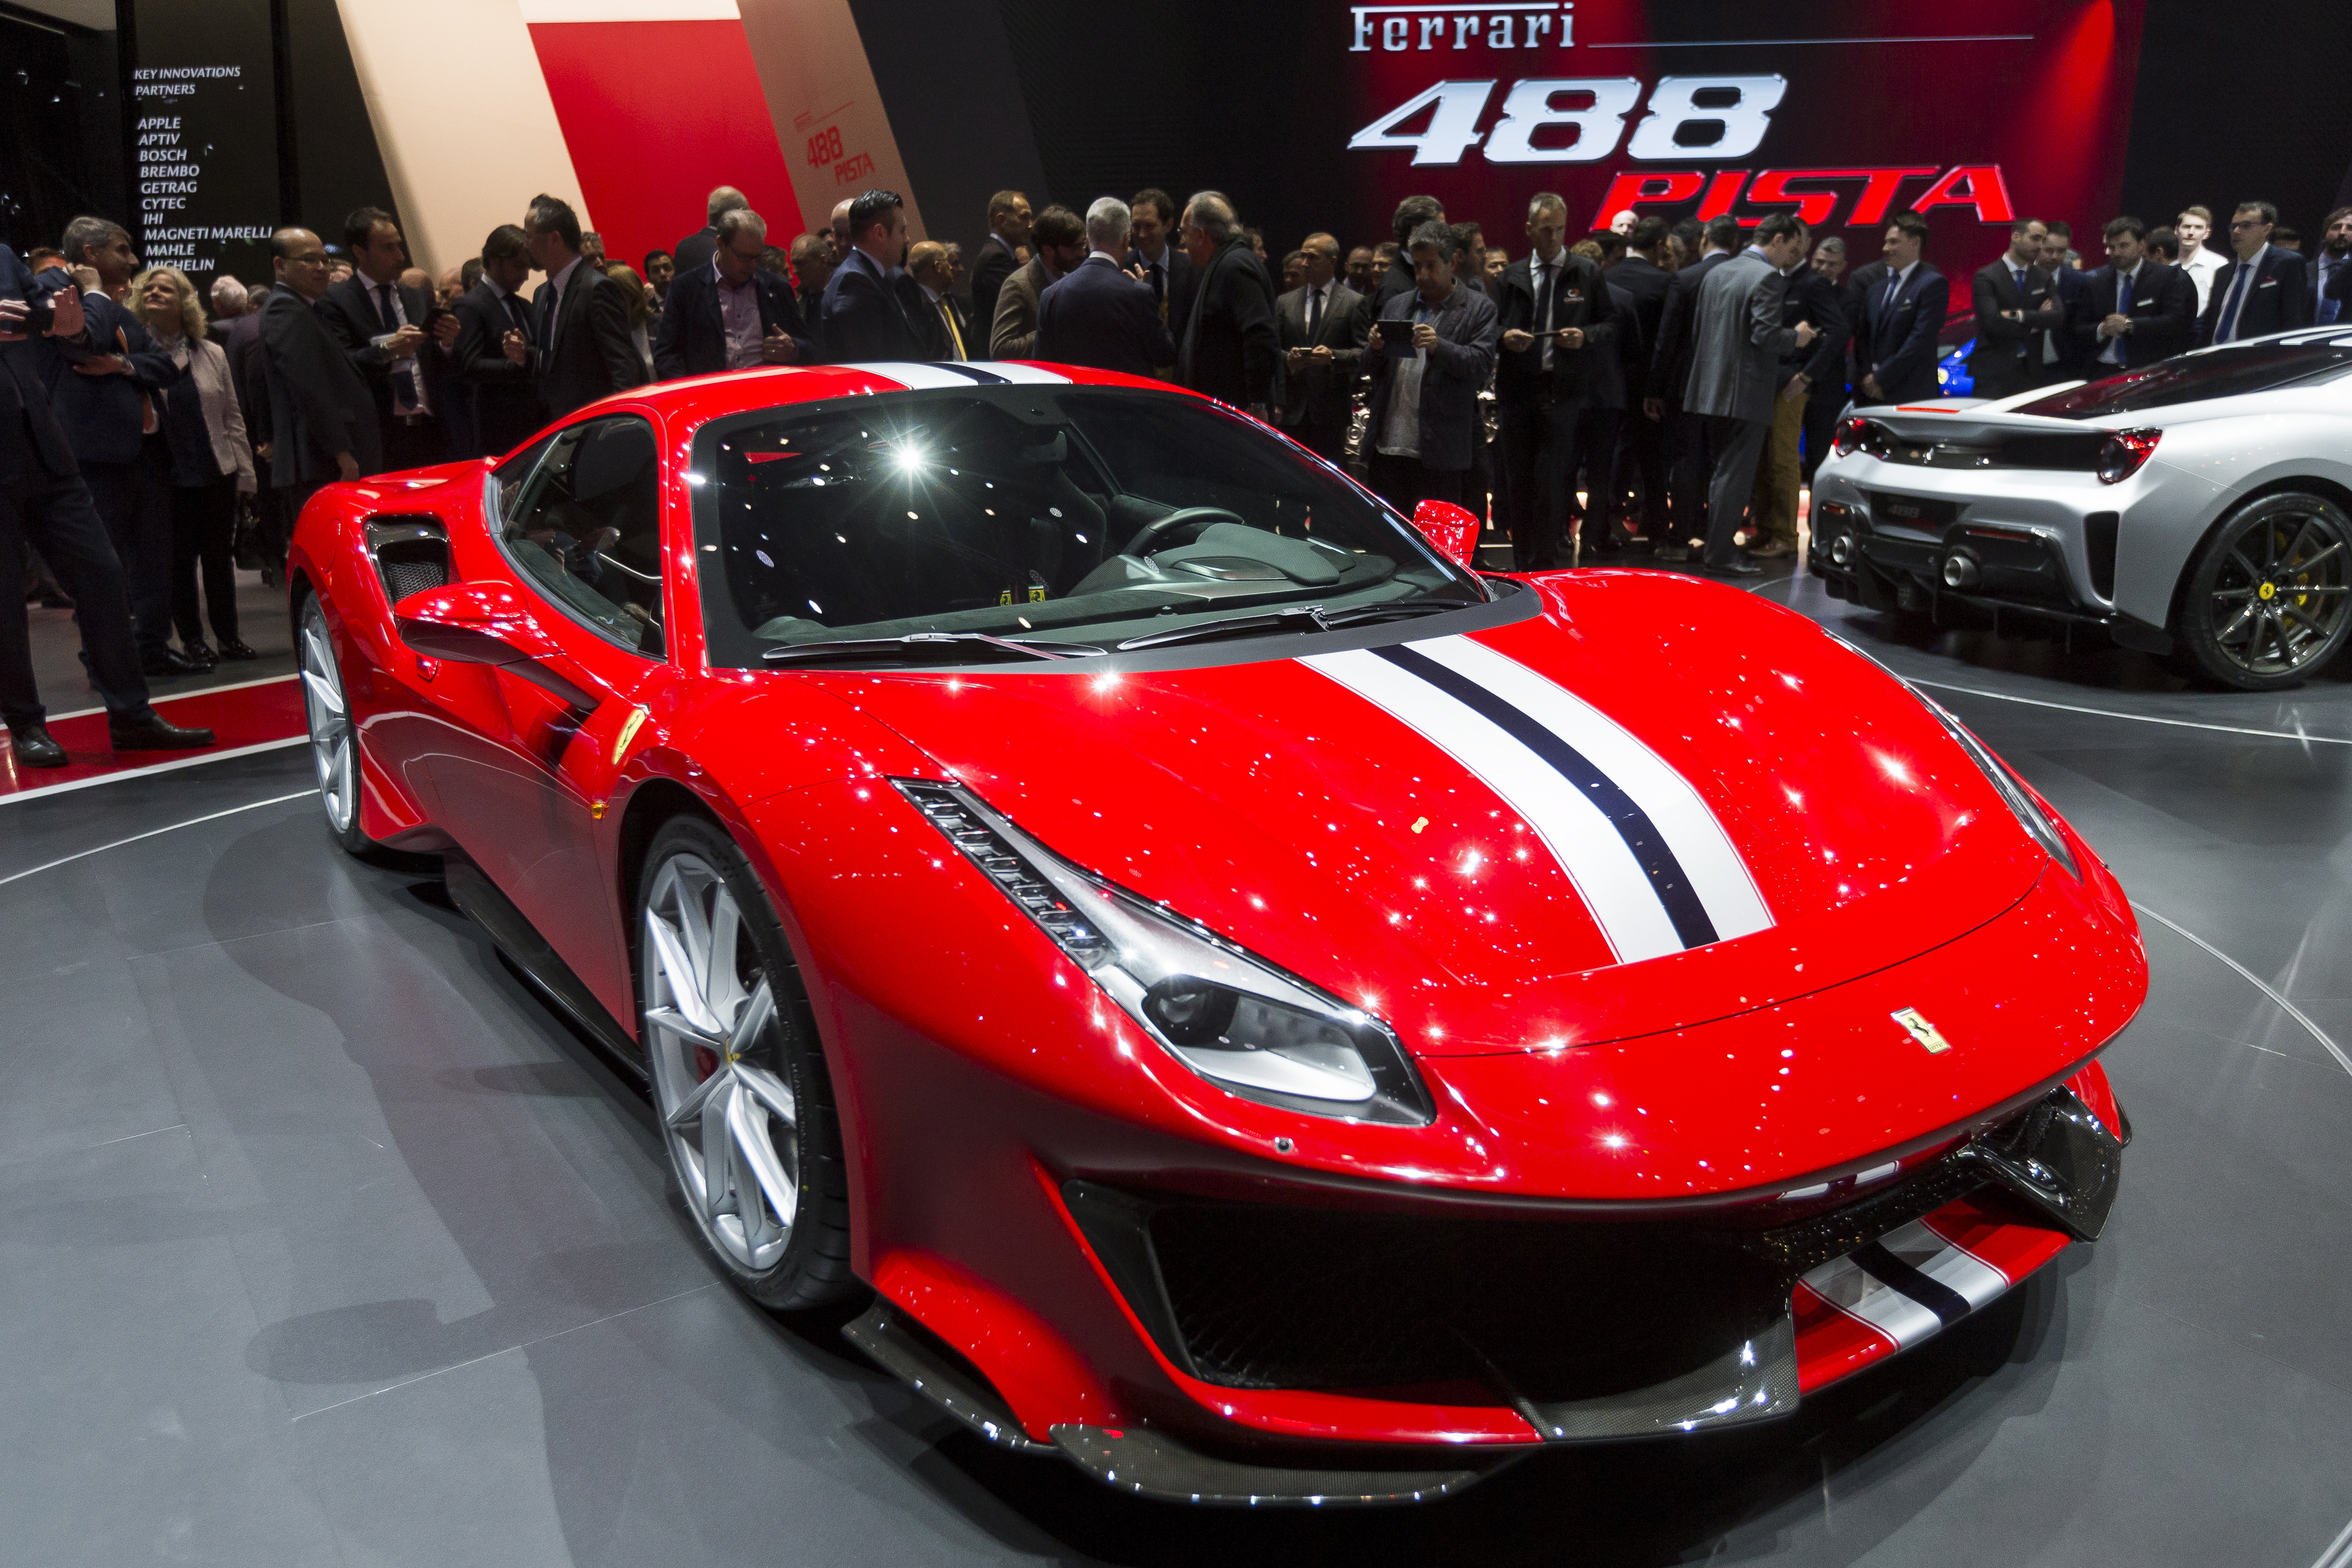 Electric Cars Ferrari Is Testing A Hybrid Supercar Quartz - Ferrari car show